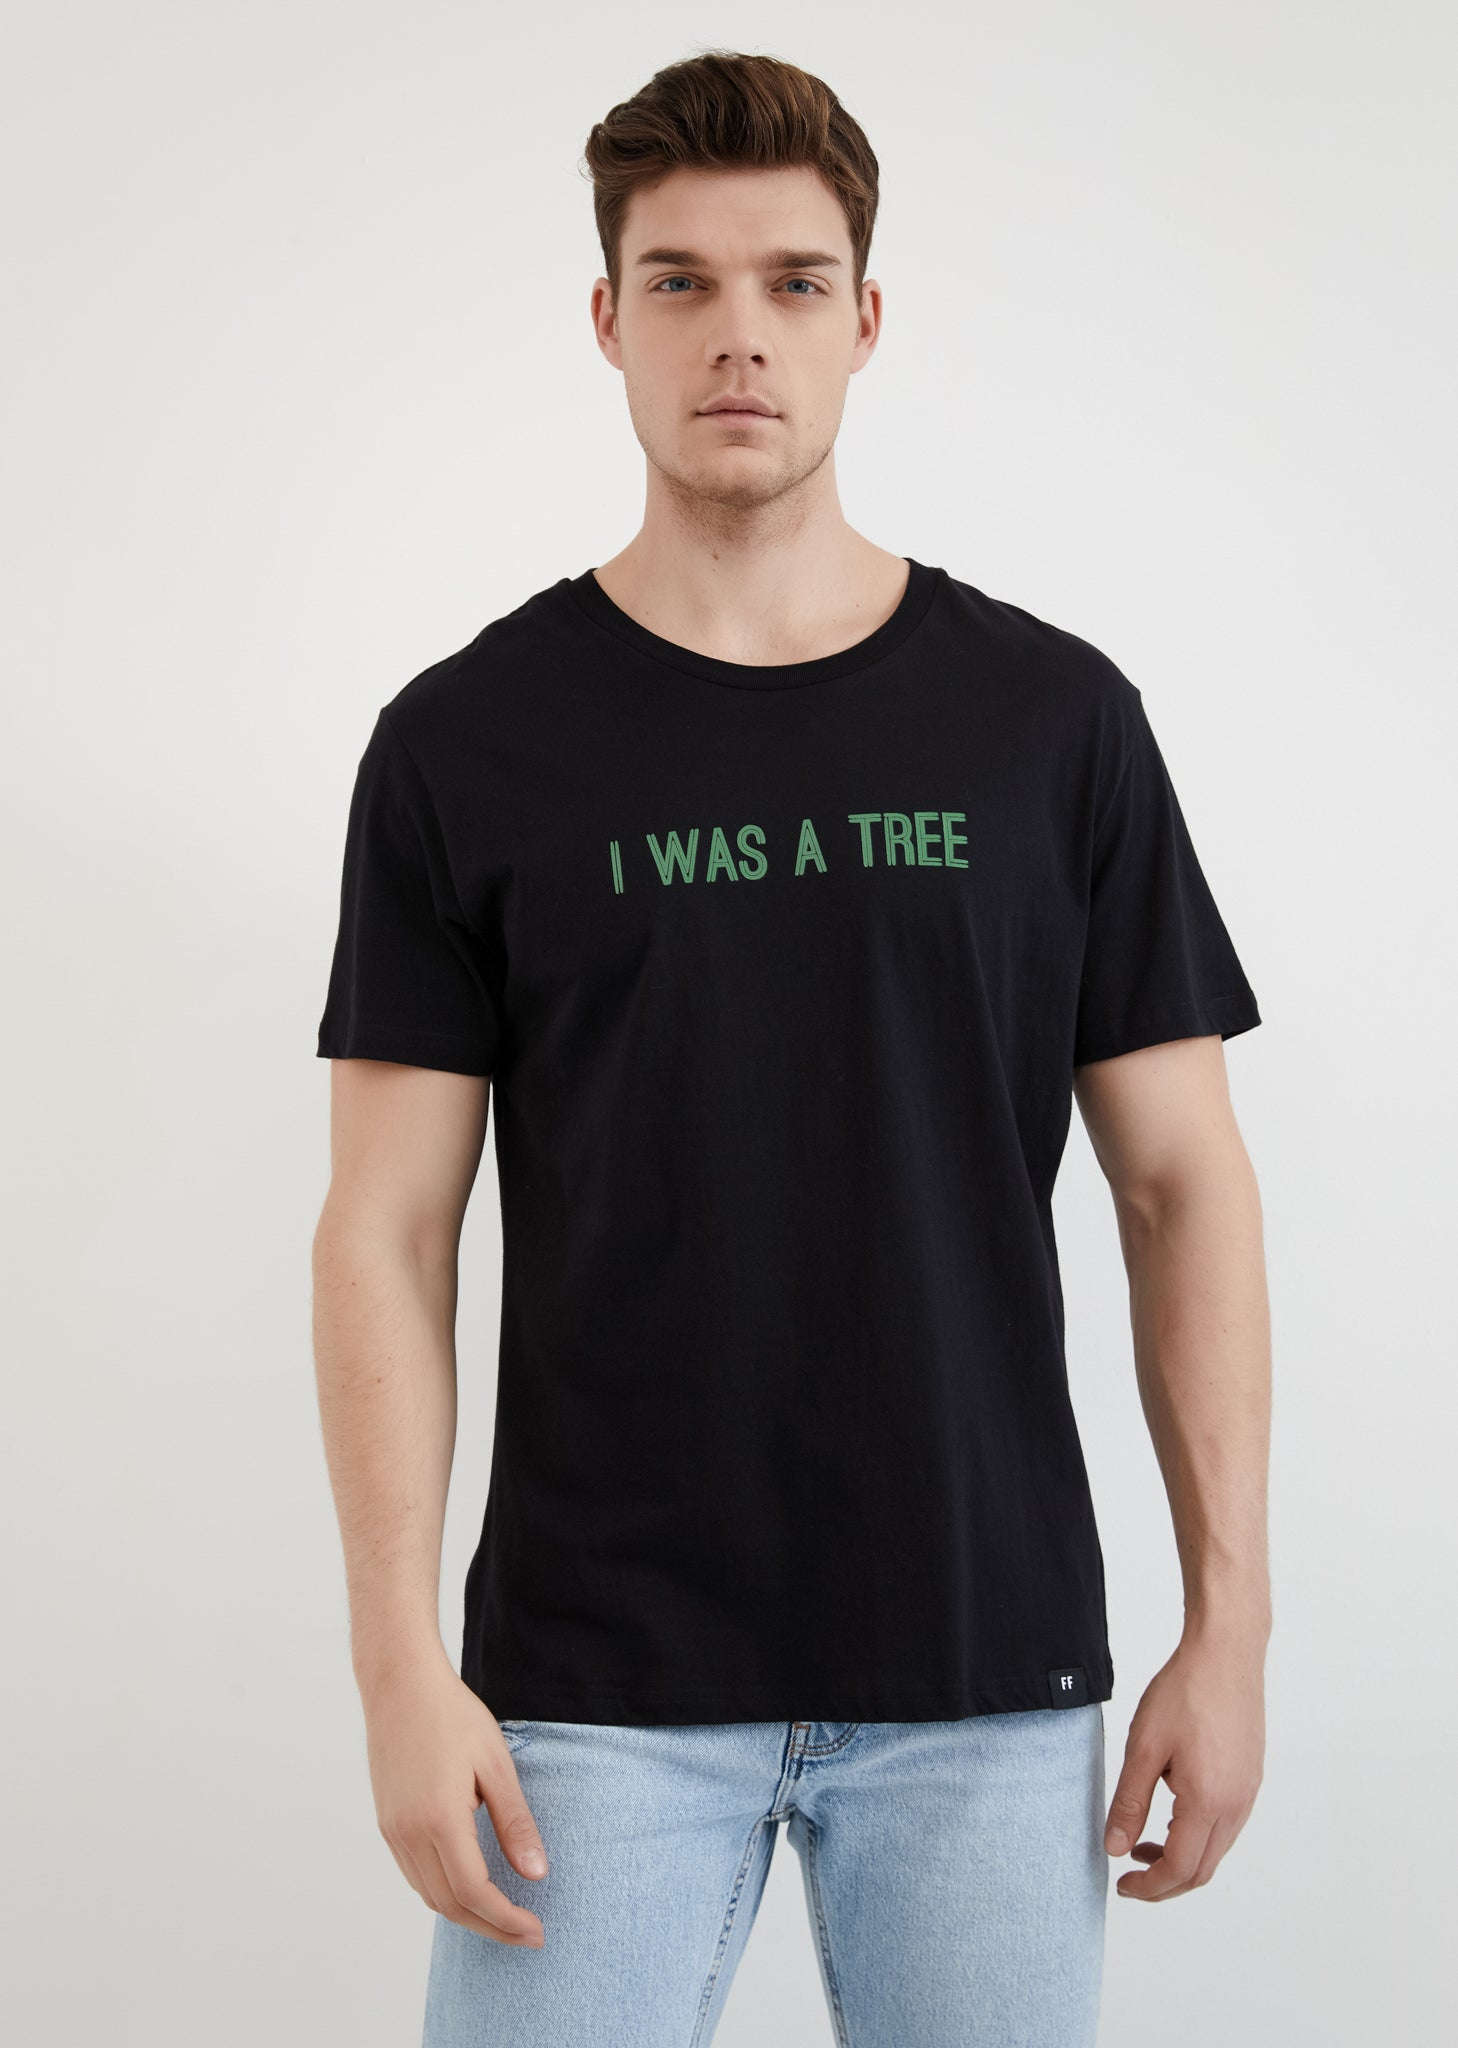 I Was a Tree / Unisex T-shirt